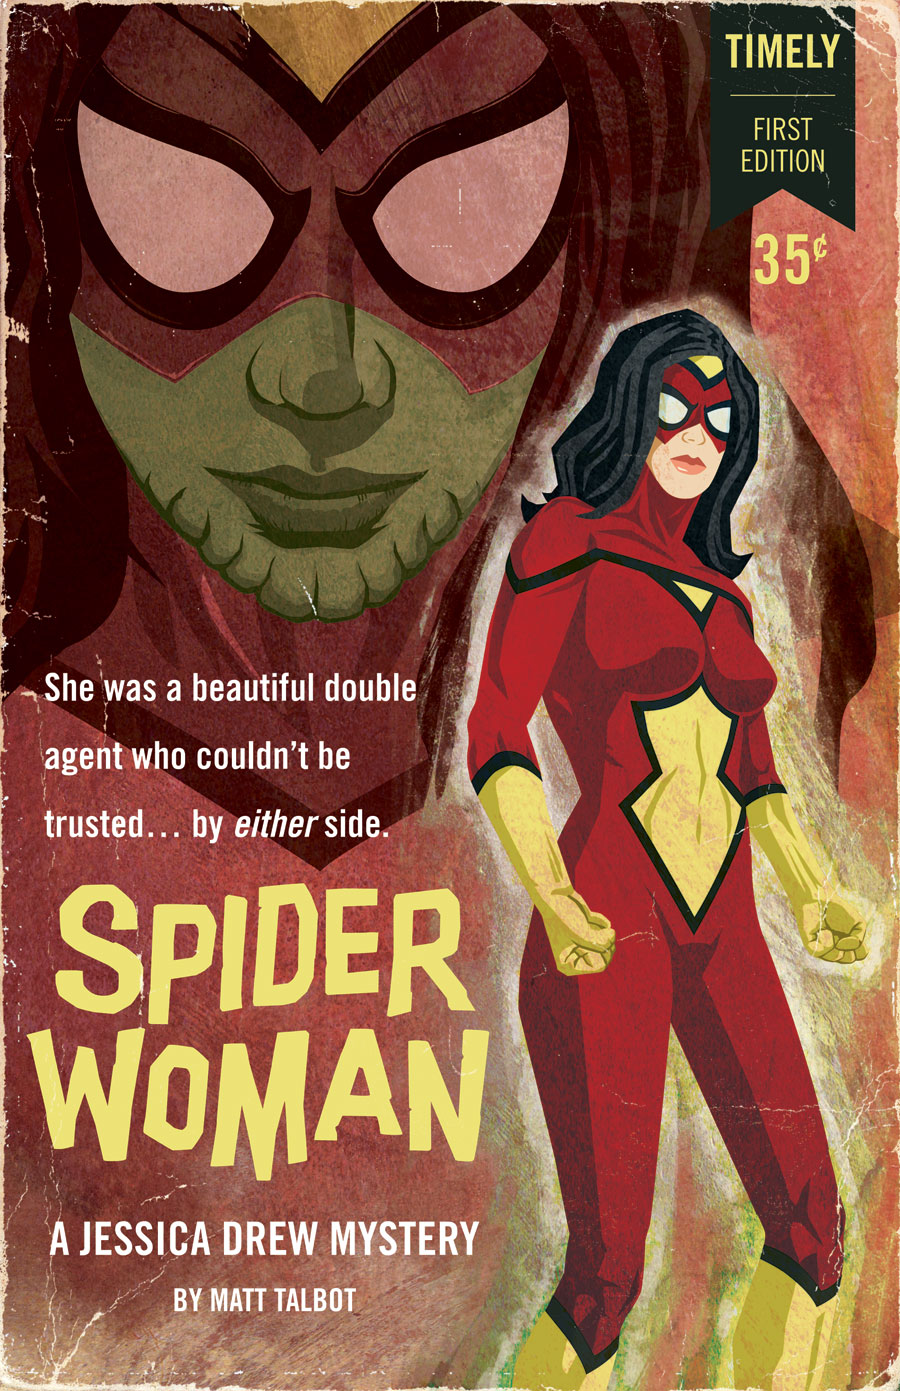 spider-woman-pulp-cover-by-matt-talbot.jpg